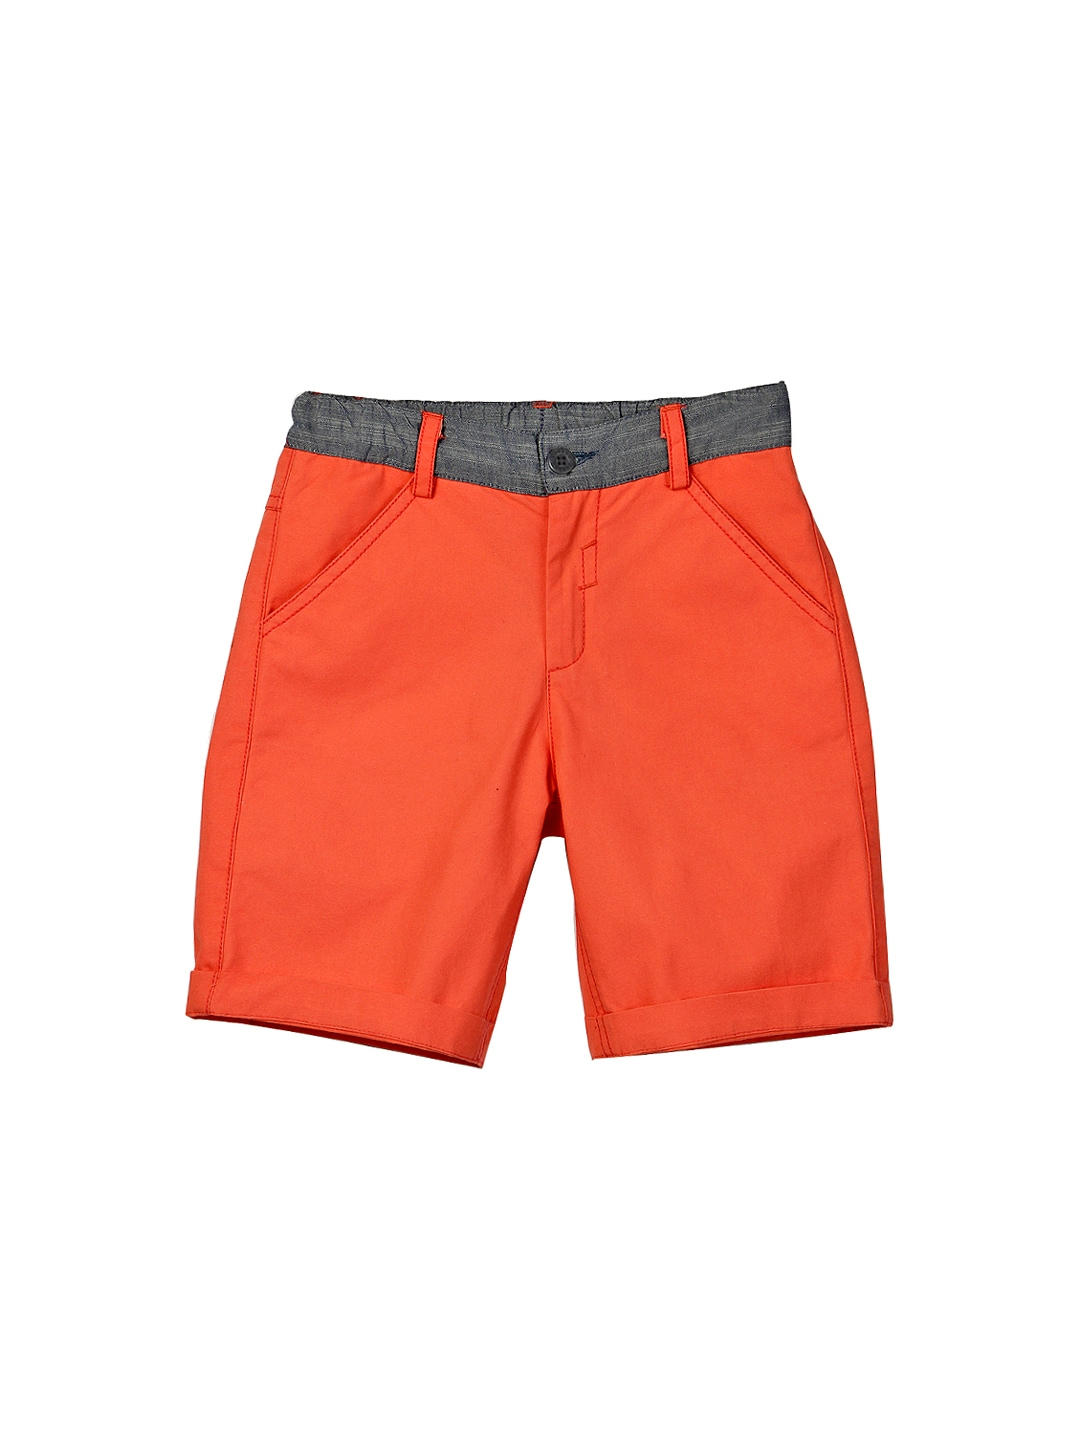 Find Boys' Orange Basketball Shorts at sofltappreciate.tk Enjoy free shipping and returns with NikePlus.